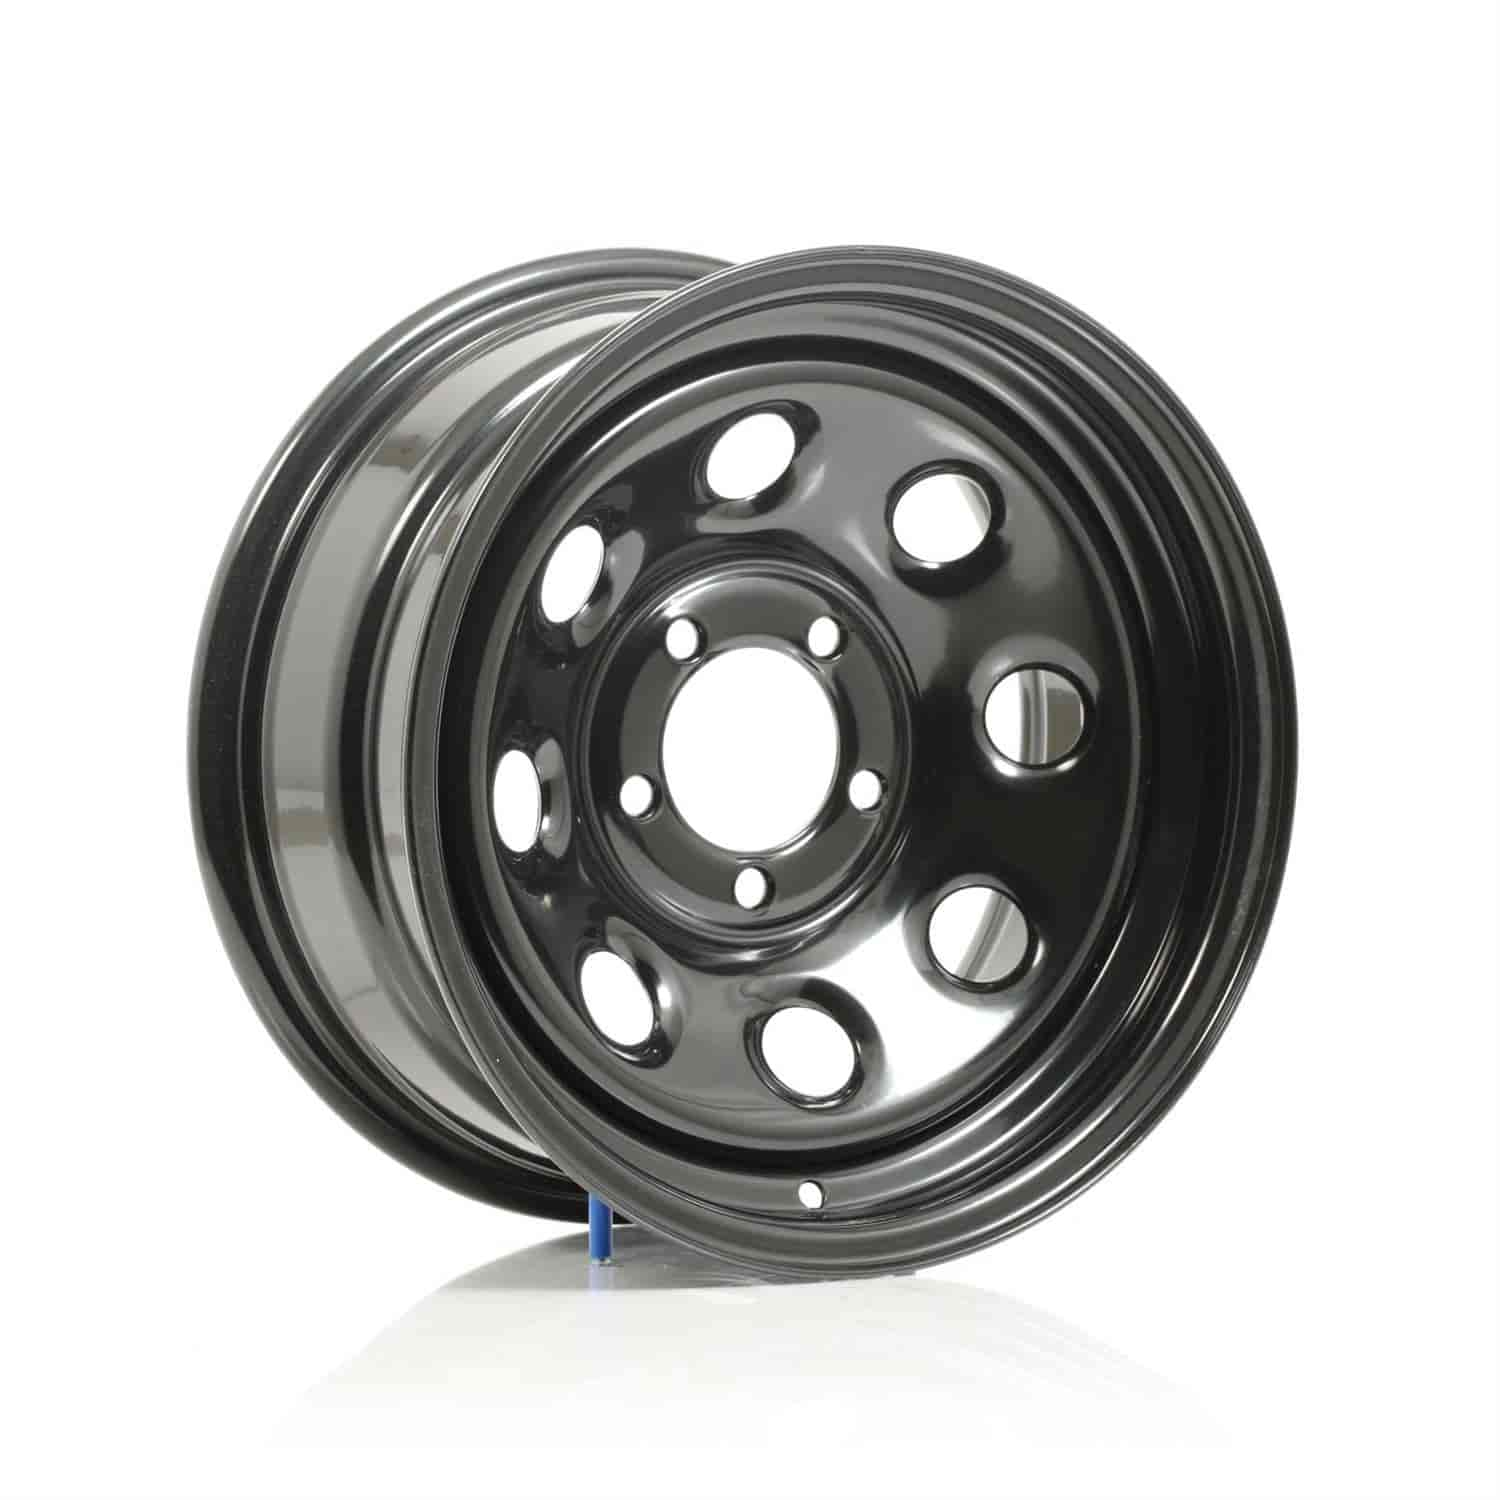 Cragar 3975750 - Cragar Black Soft 8 Wheels